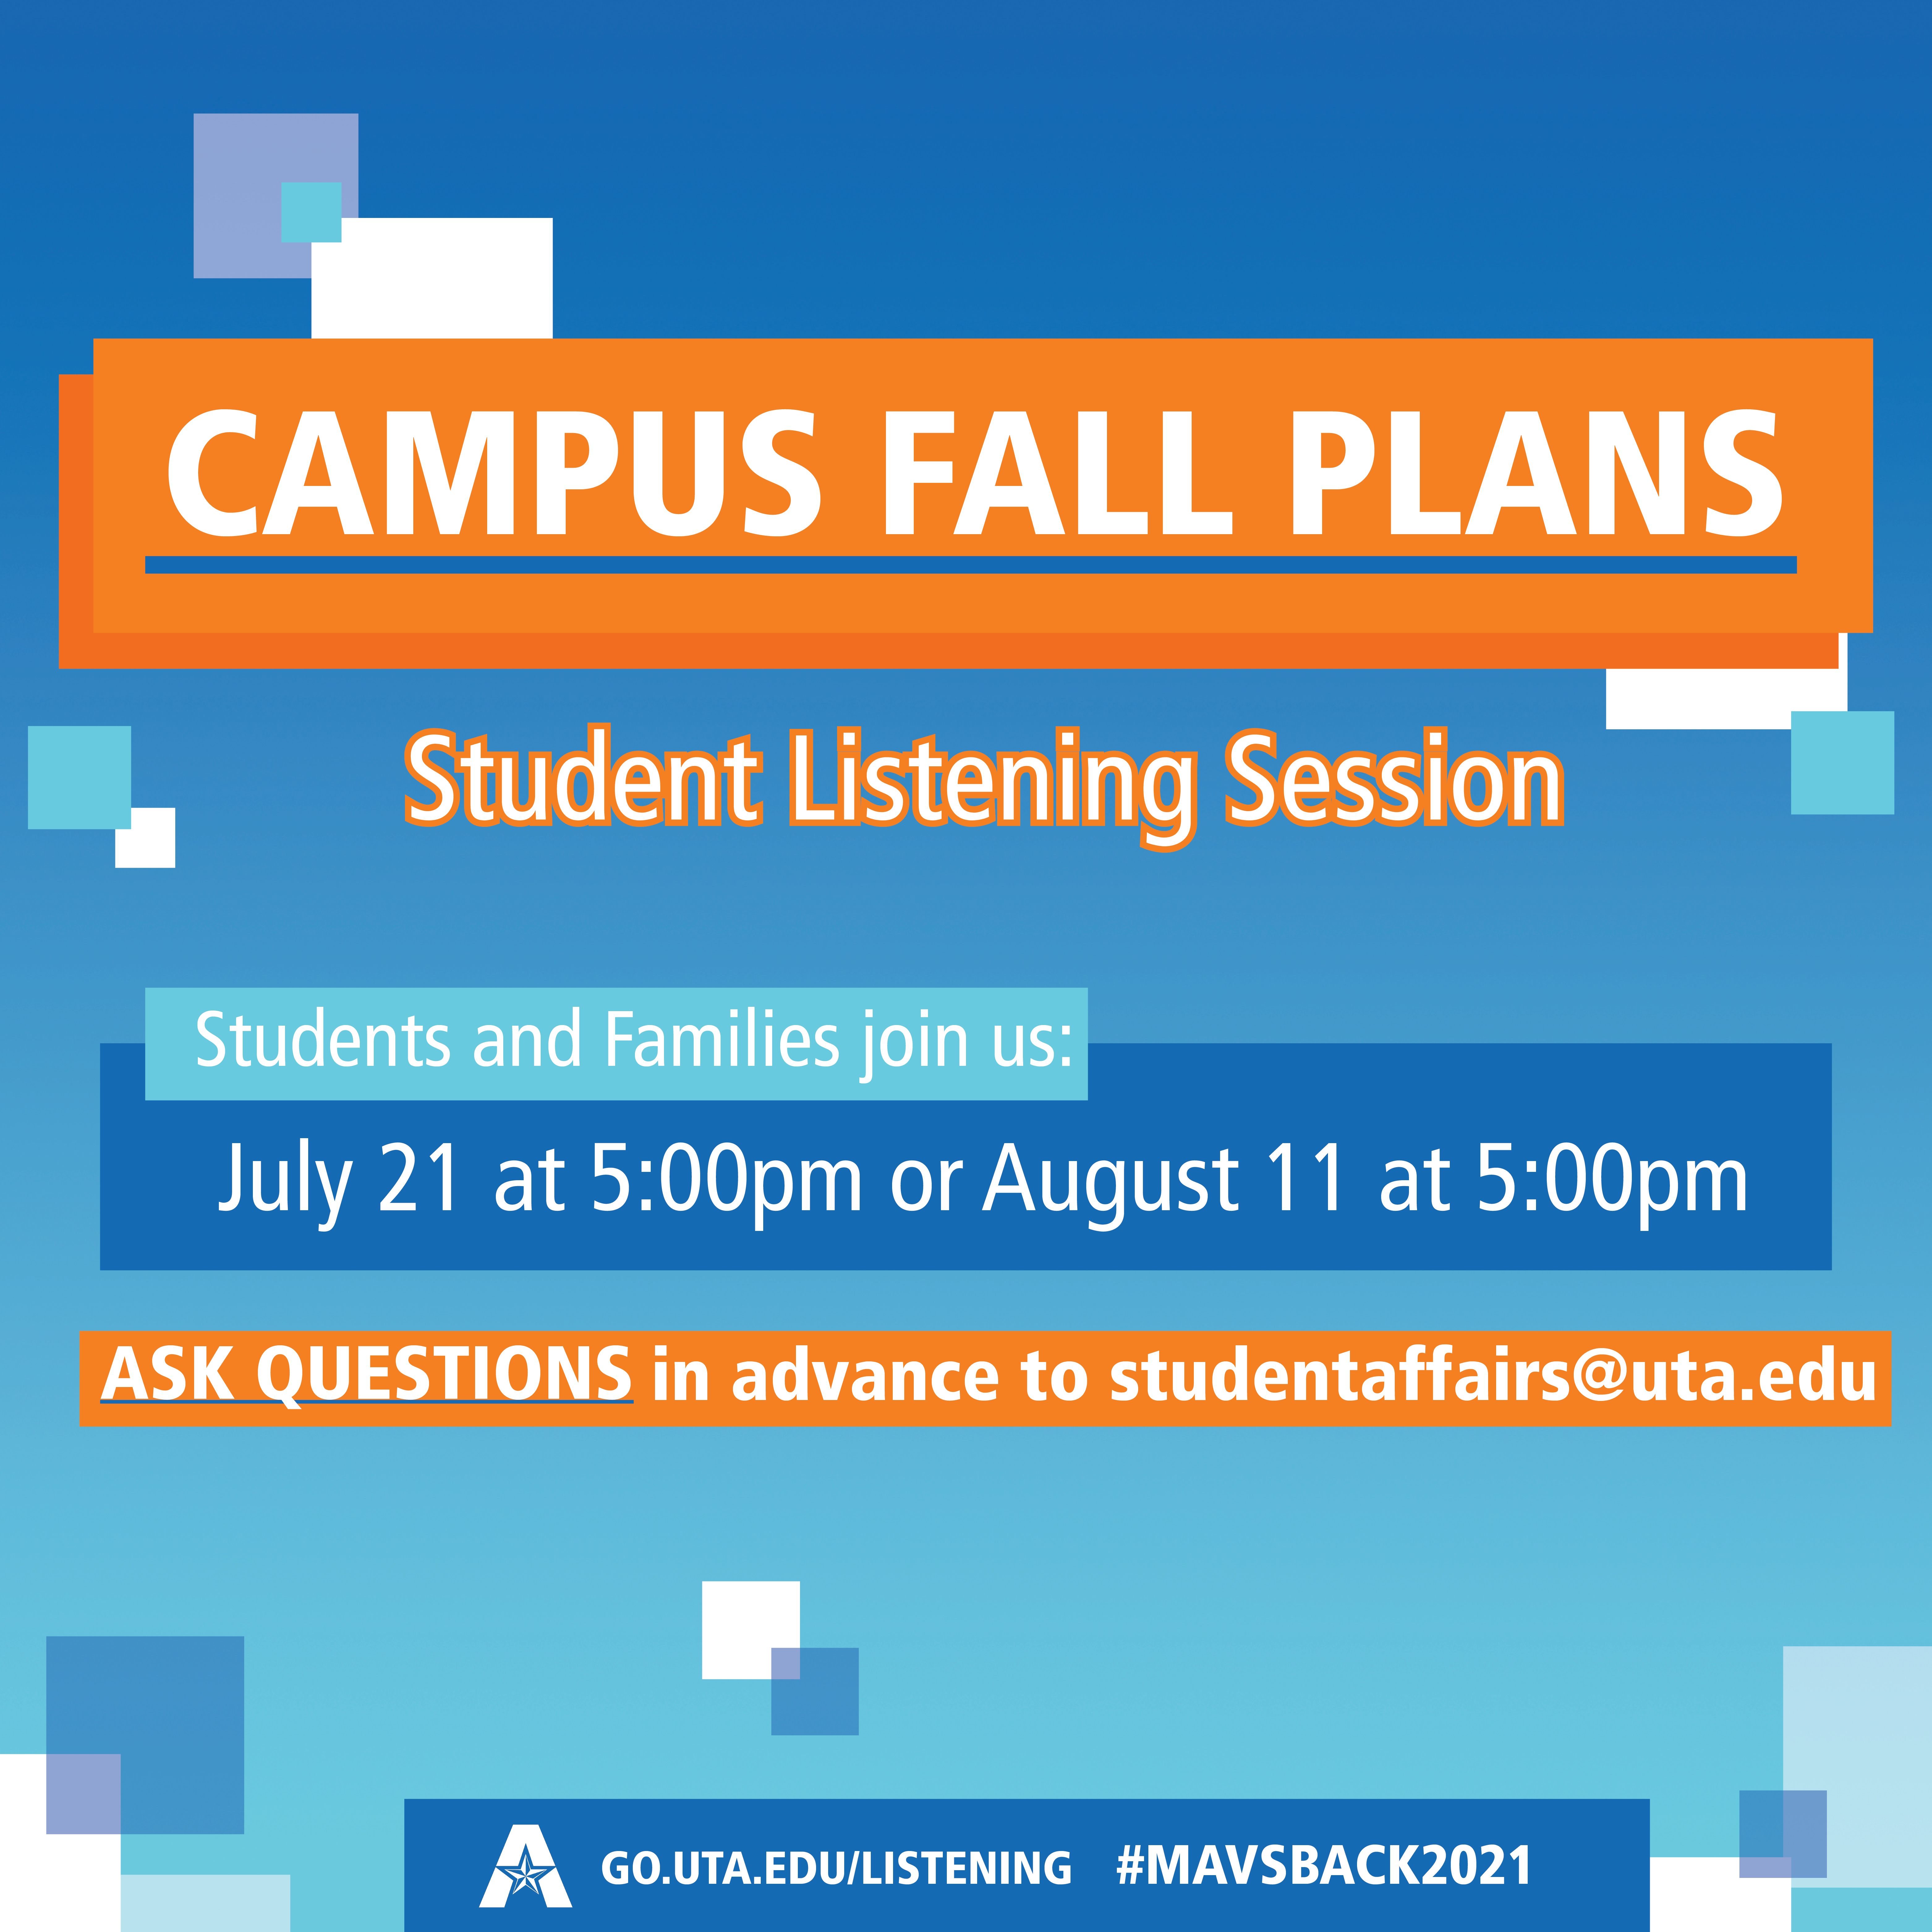 Campus Fall Plans - Student Listening Session. July 21st and August 11th at 5pm. Ask questions via email studentaffairs@uta.edu.